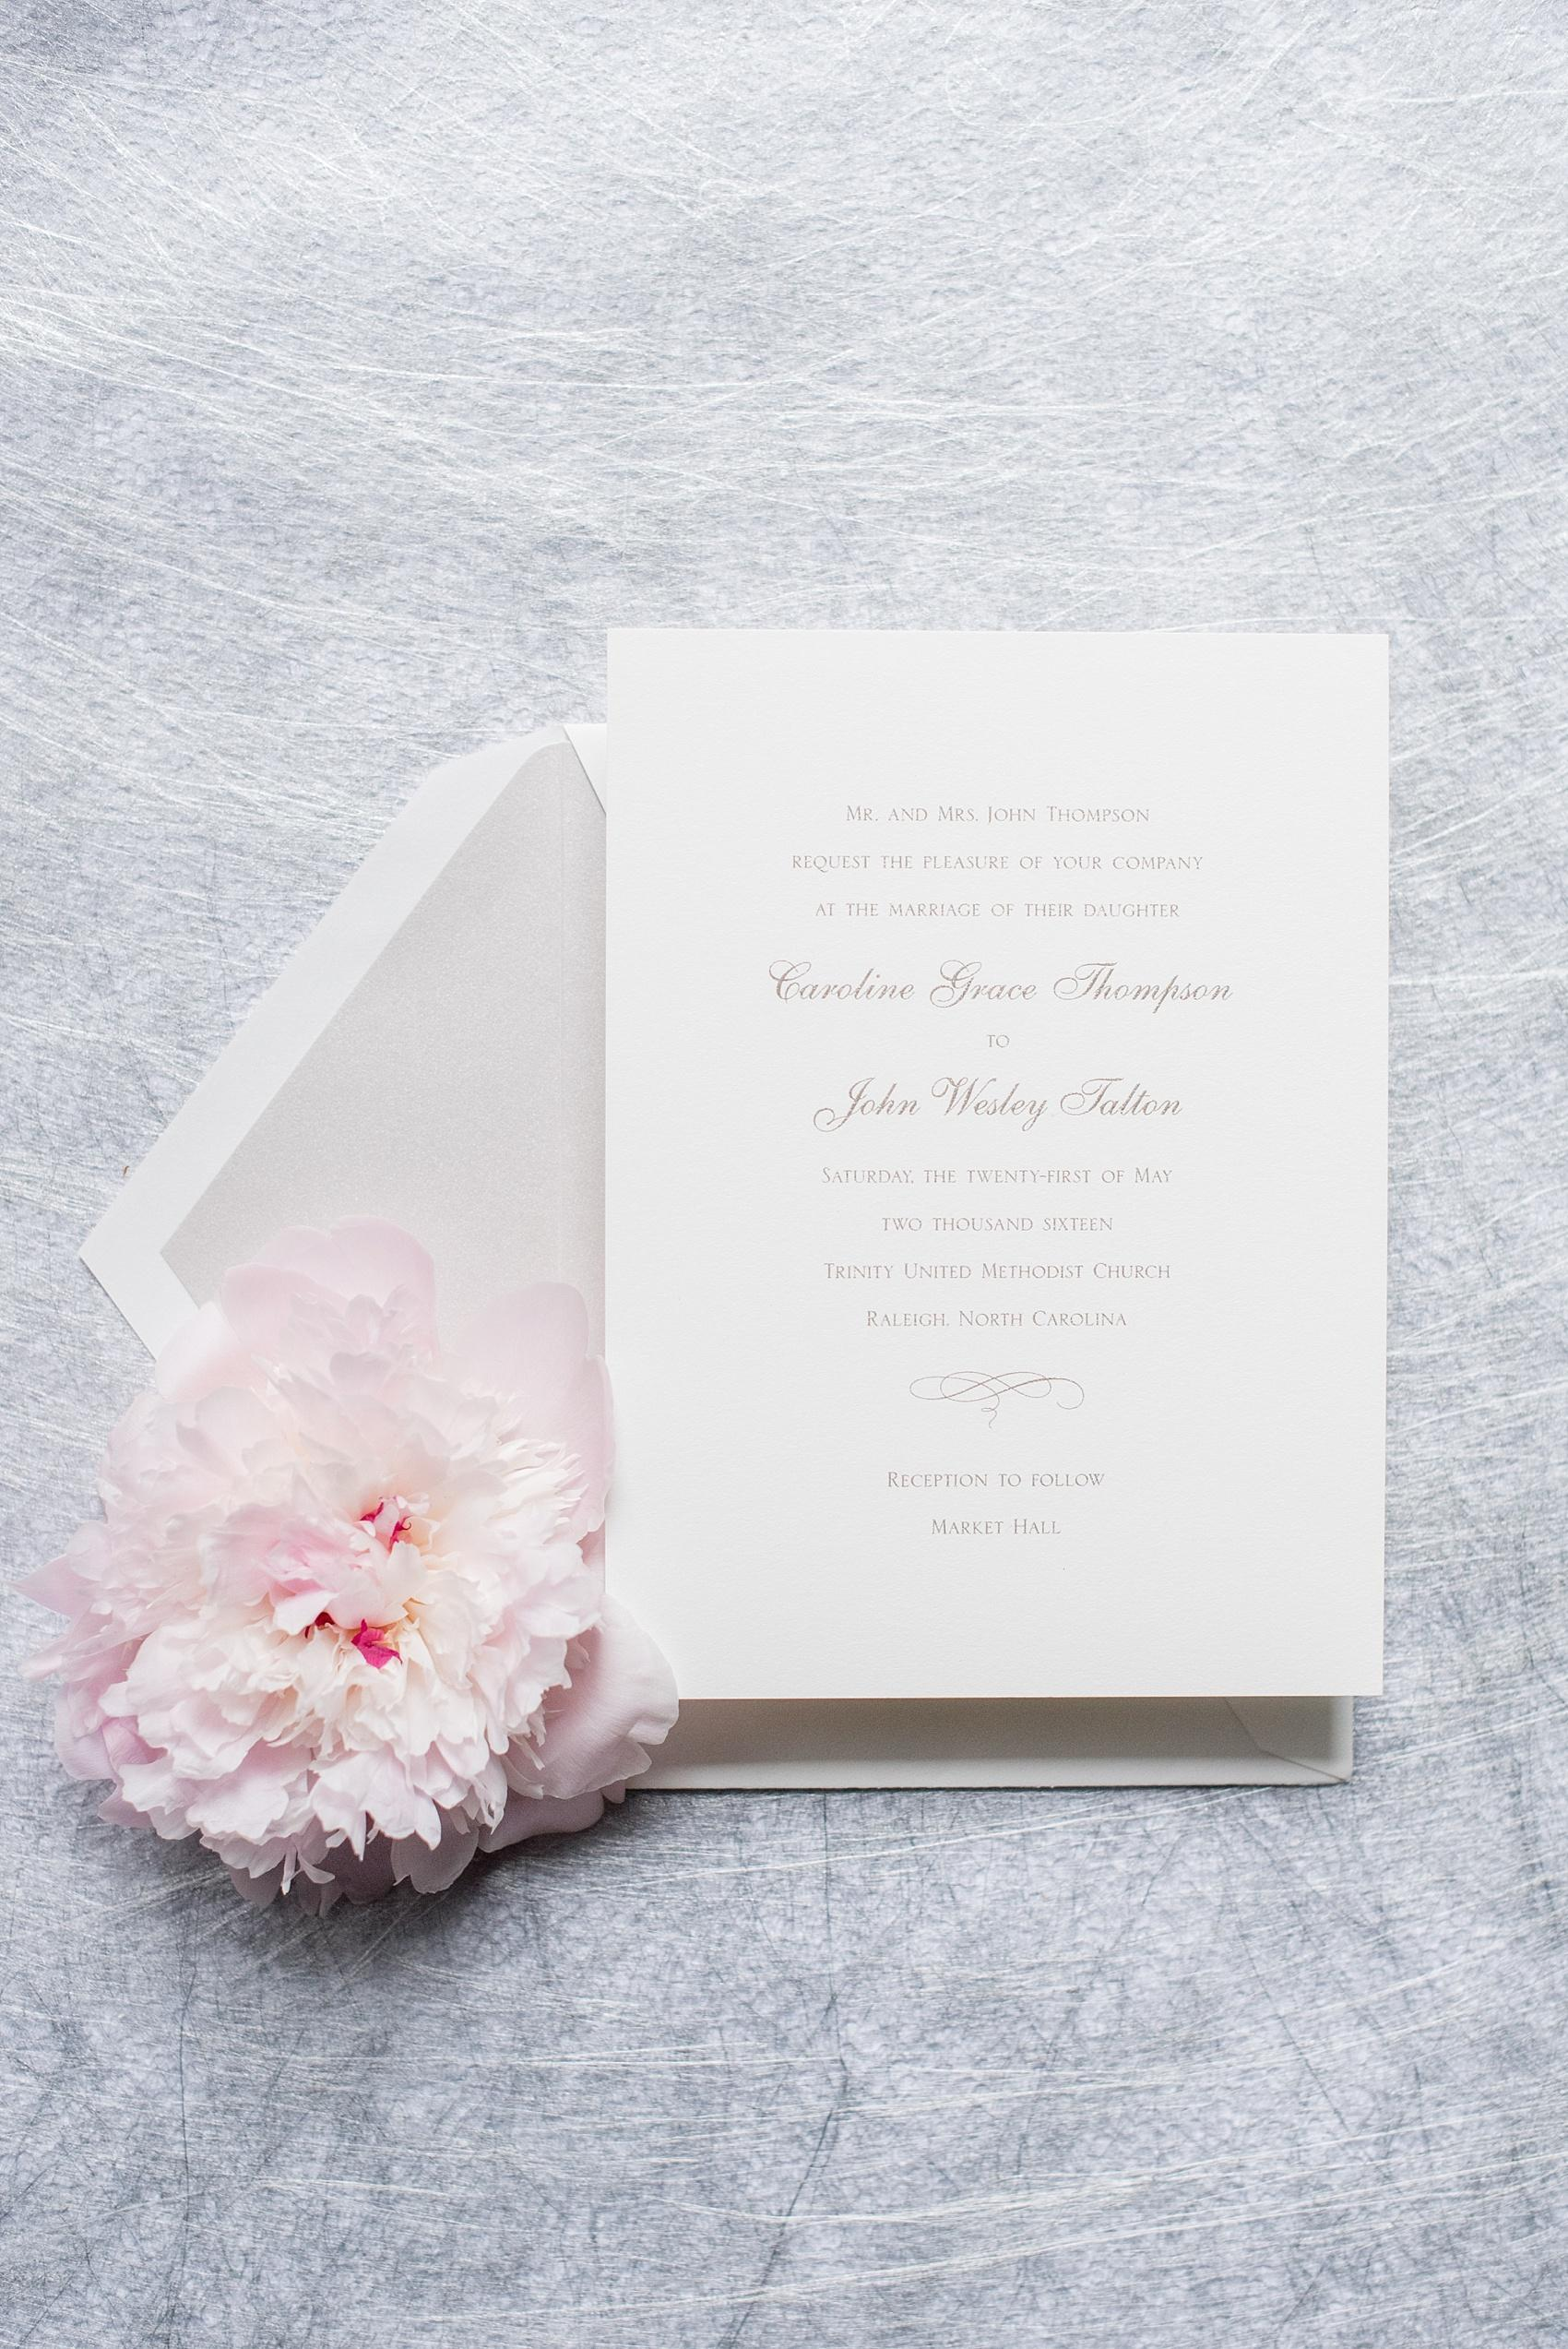 Mikkel Paige Photography photos of a downtown Raleigh Market Hall wedding with pictures of the simple white and silver invitation from If It's Paper.